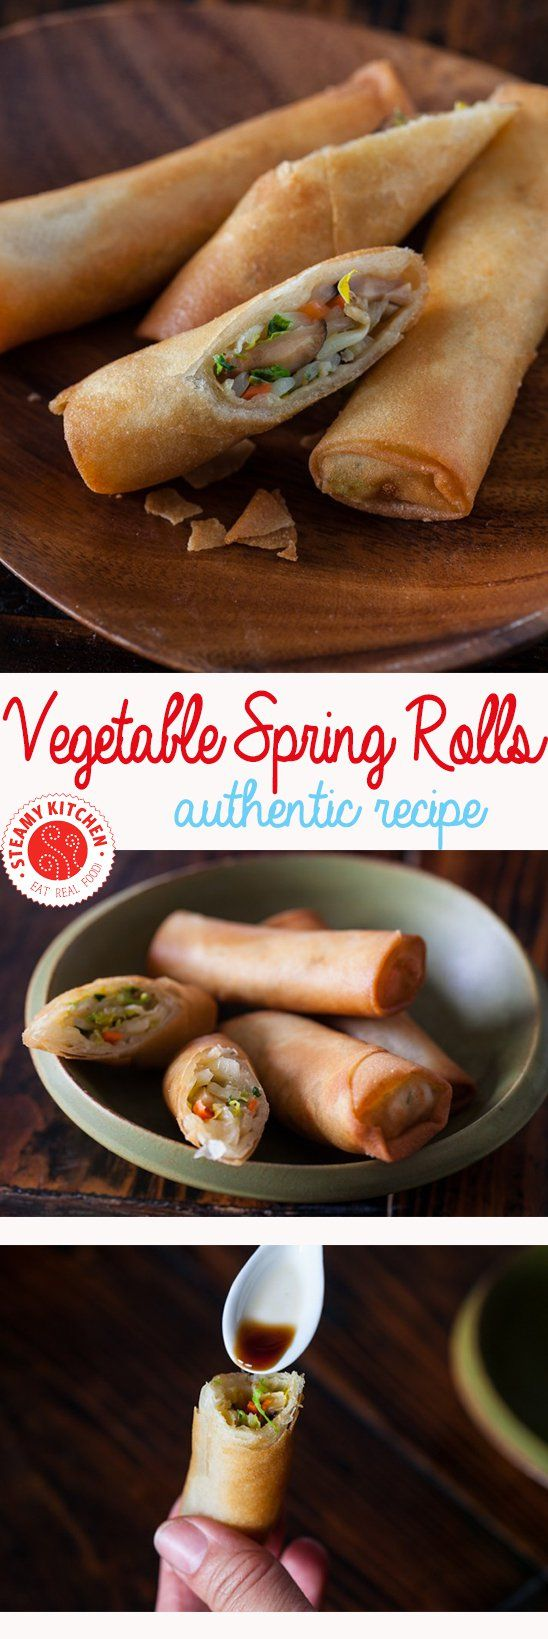 Easy and authentic Vegetable Spring Rolls Recipe with step-by-step video by recipe developer, TV chef and cookbook author, Jaden of SteamyKitchen.com ~ http://steamykitchen.com